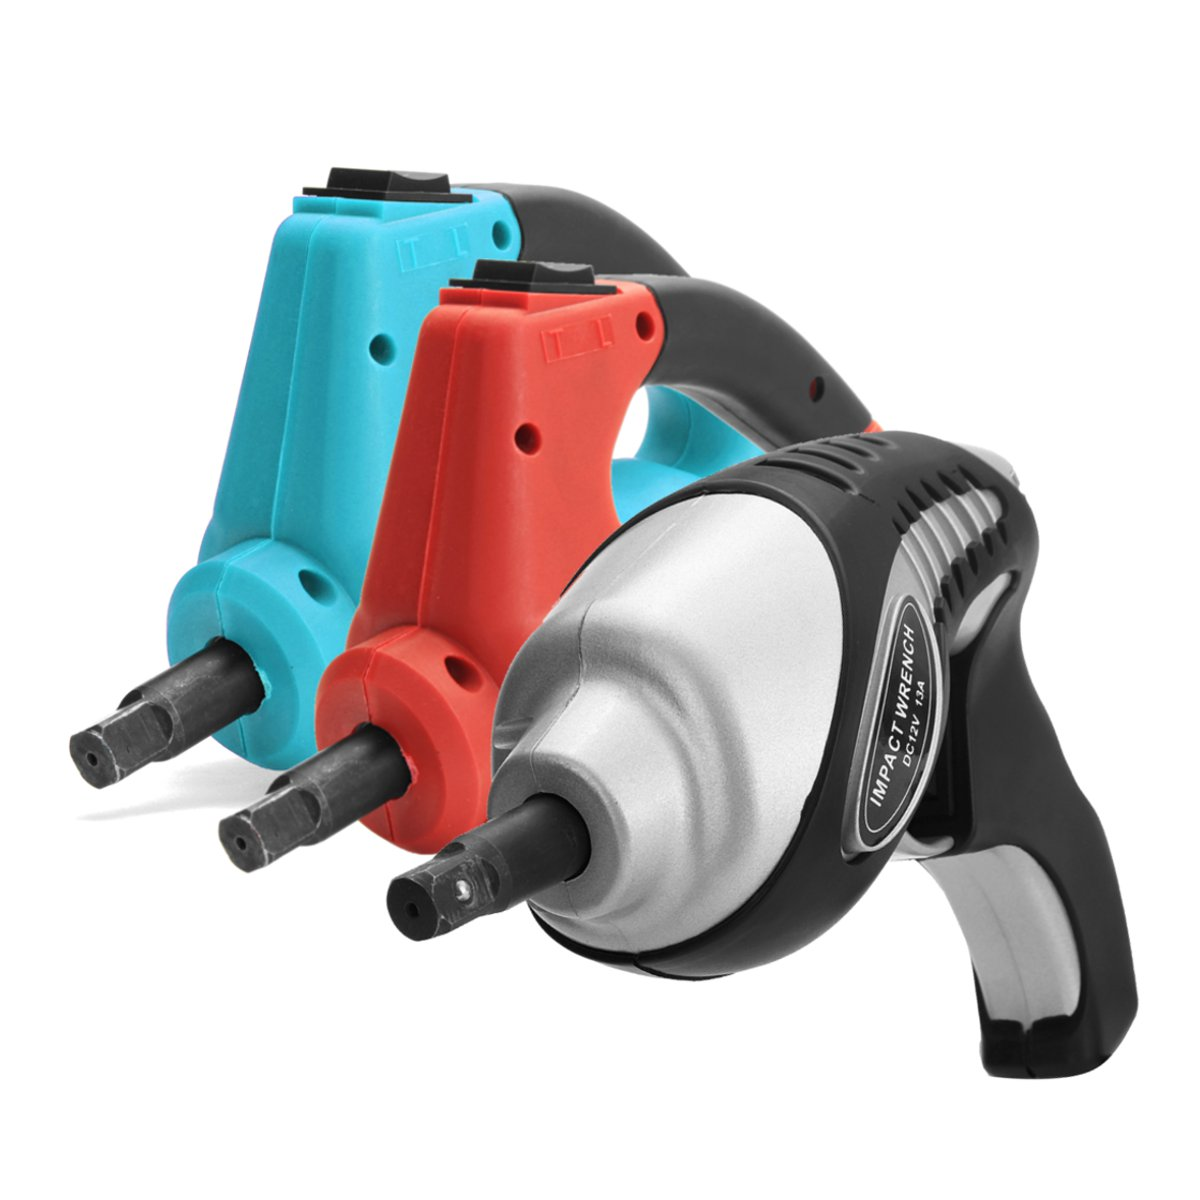 Corded impact wrench car repair Electric wrench